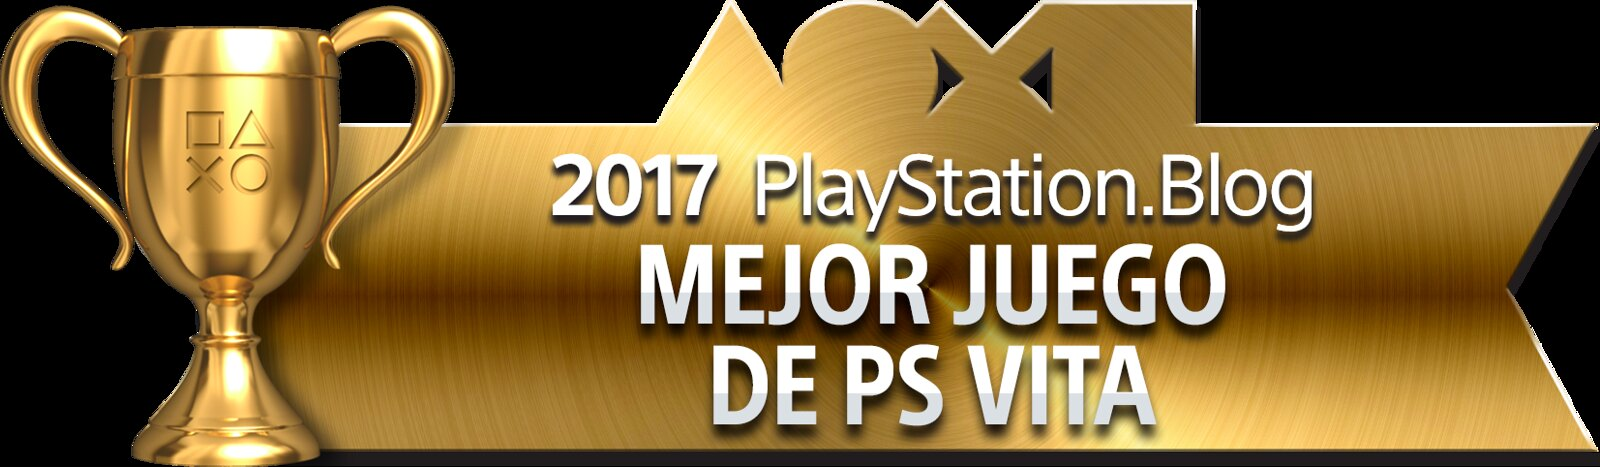 PlayStation Blog Game of the Year 2017 - Best PS Vita Game (Gold)